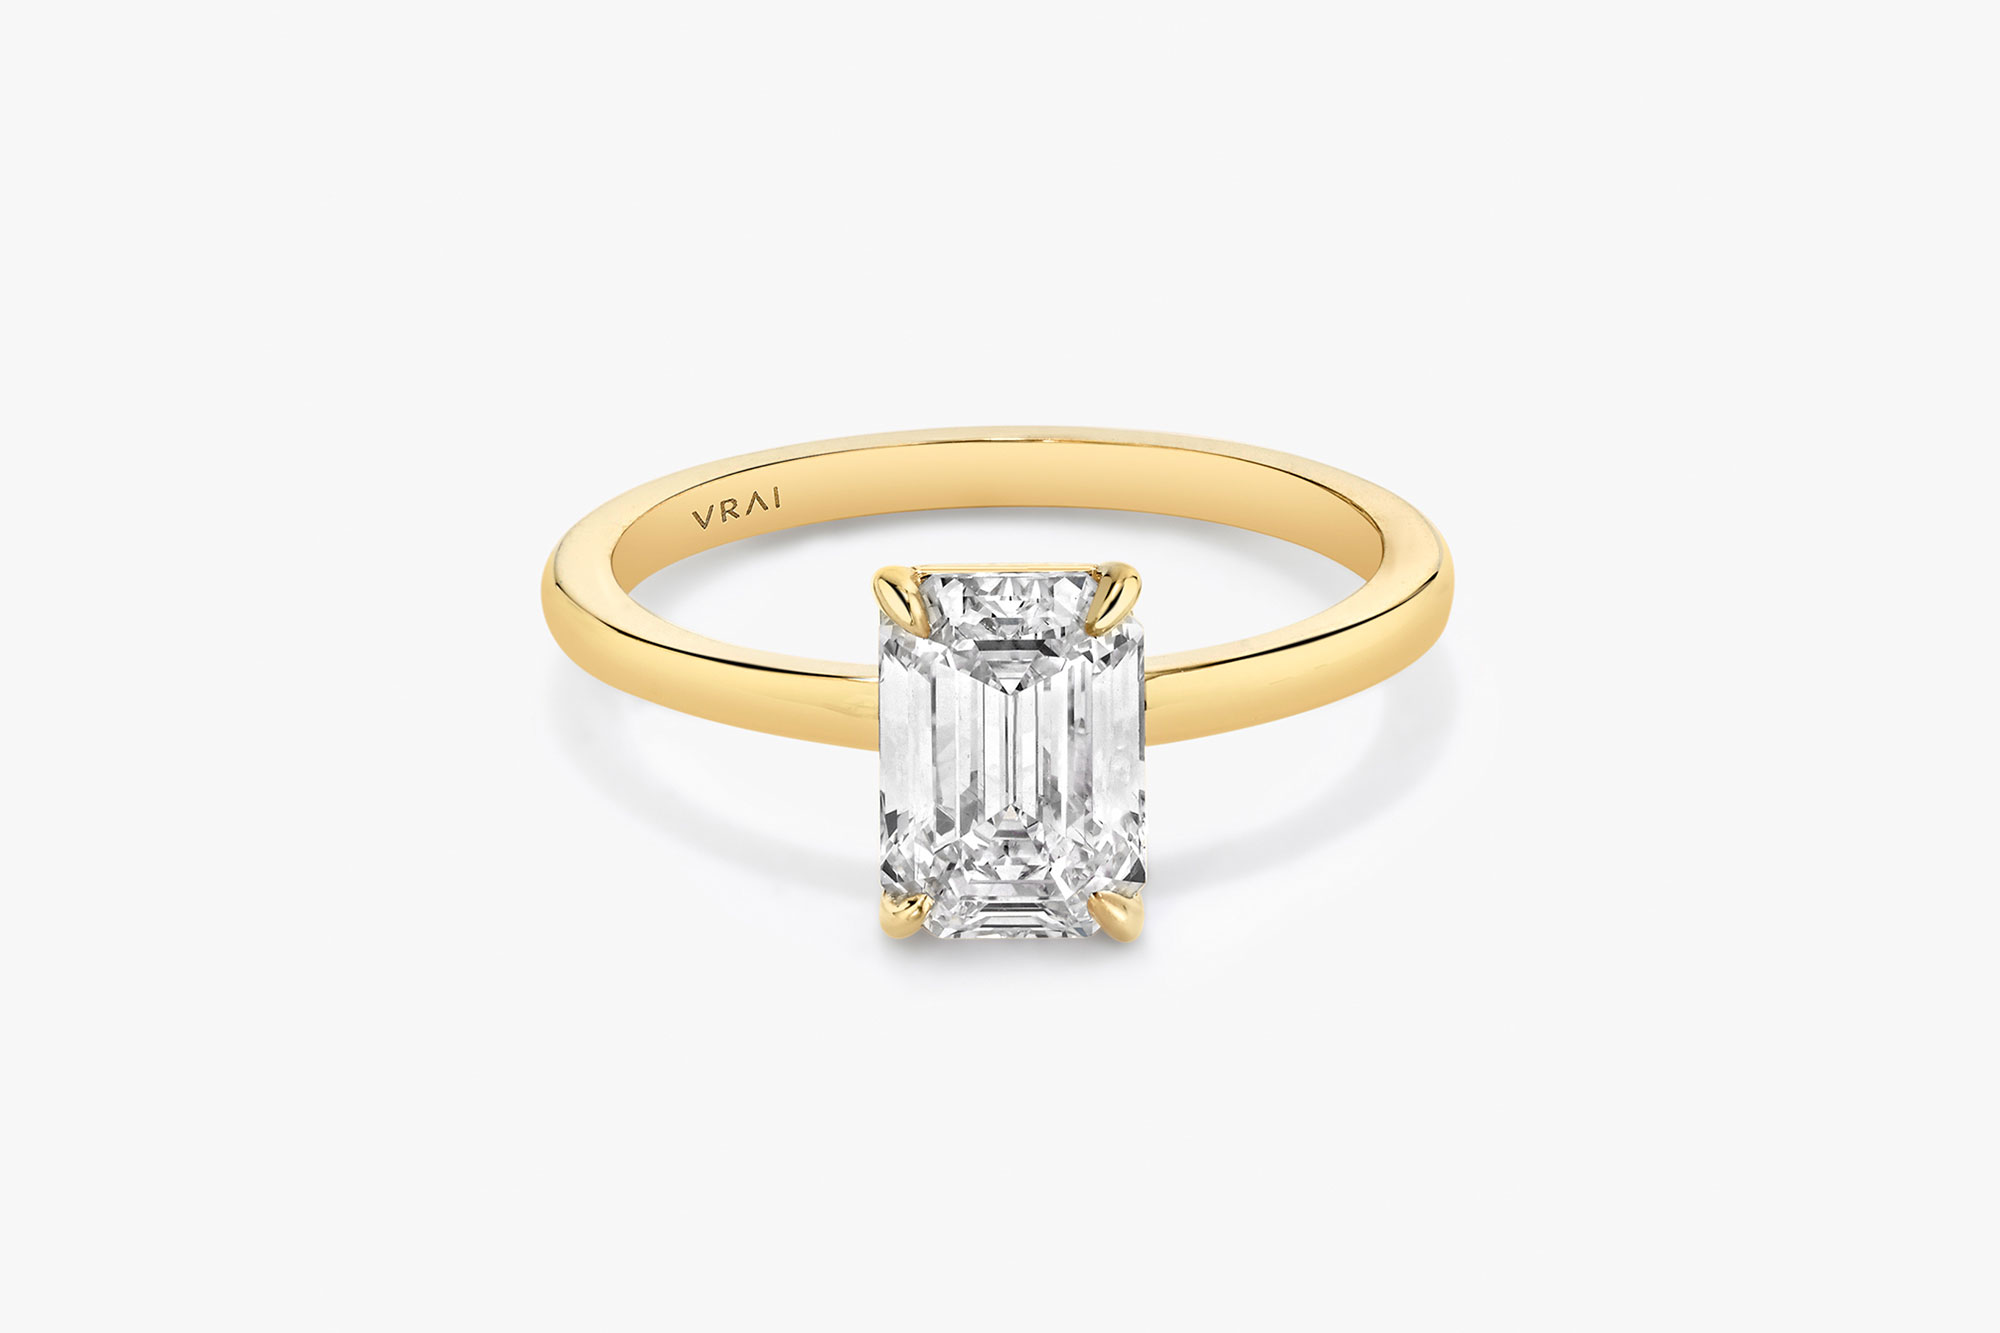 The Signature solitaire ring in 18k yellow gold with an emerald cut diamond